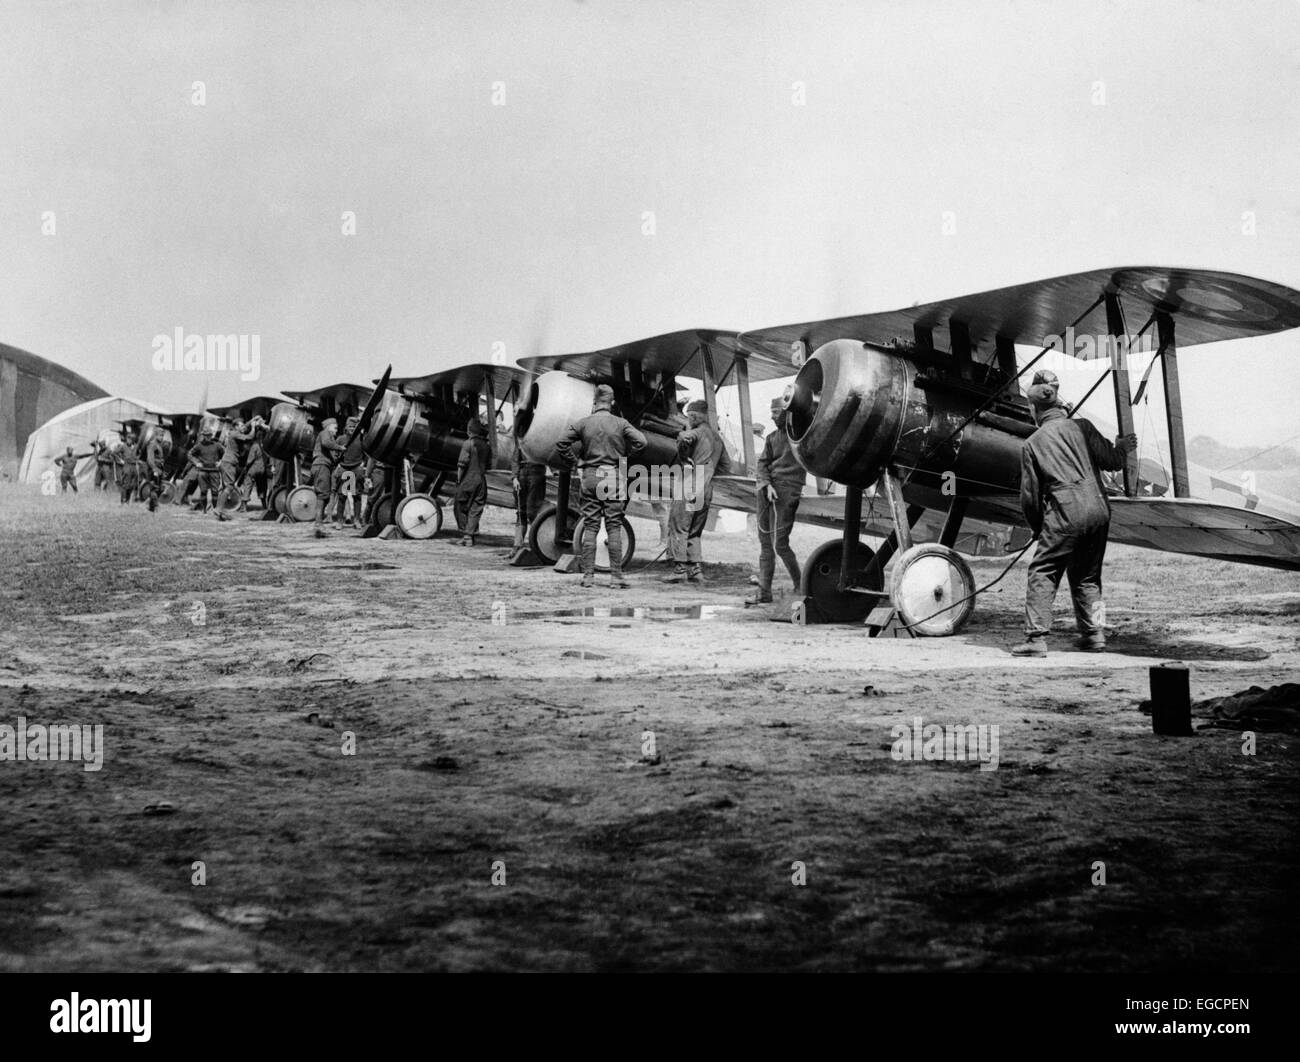 1918 FLIGHT LINE OF AMERICAN EXPEDITIONARY FORCE PILOTS AND SOPWITH CAMEL WWI BIPLANES - Stock Image